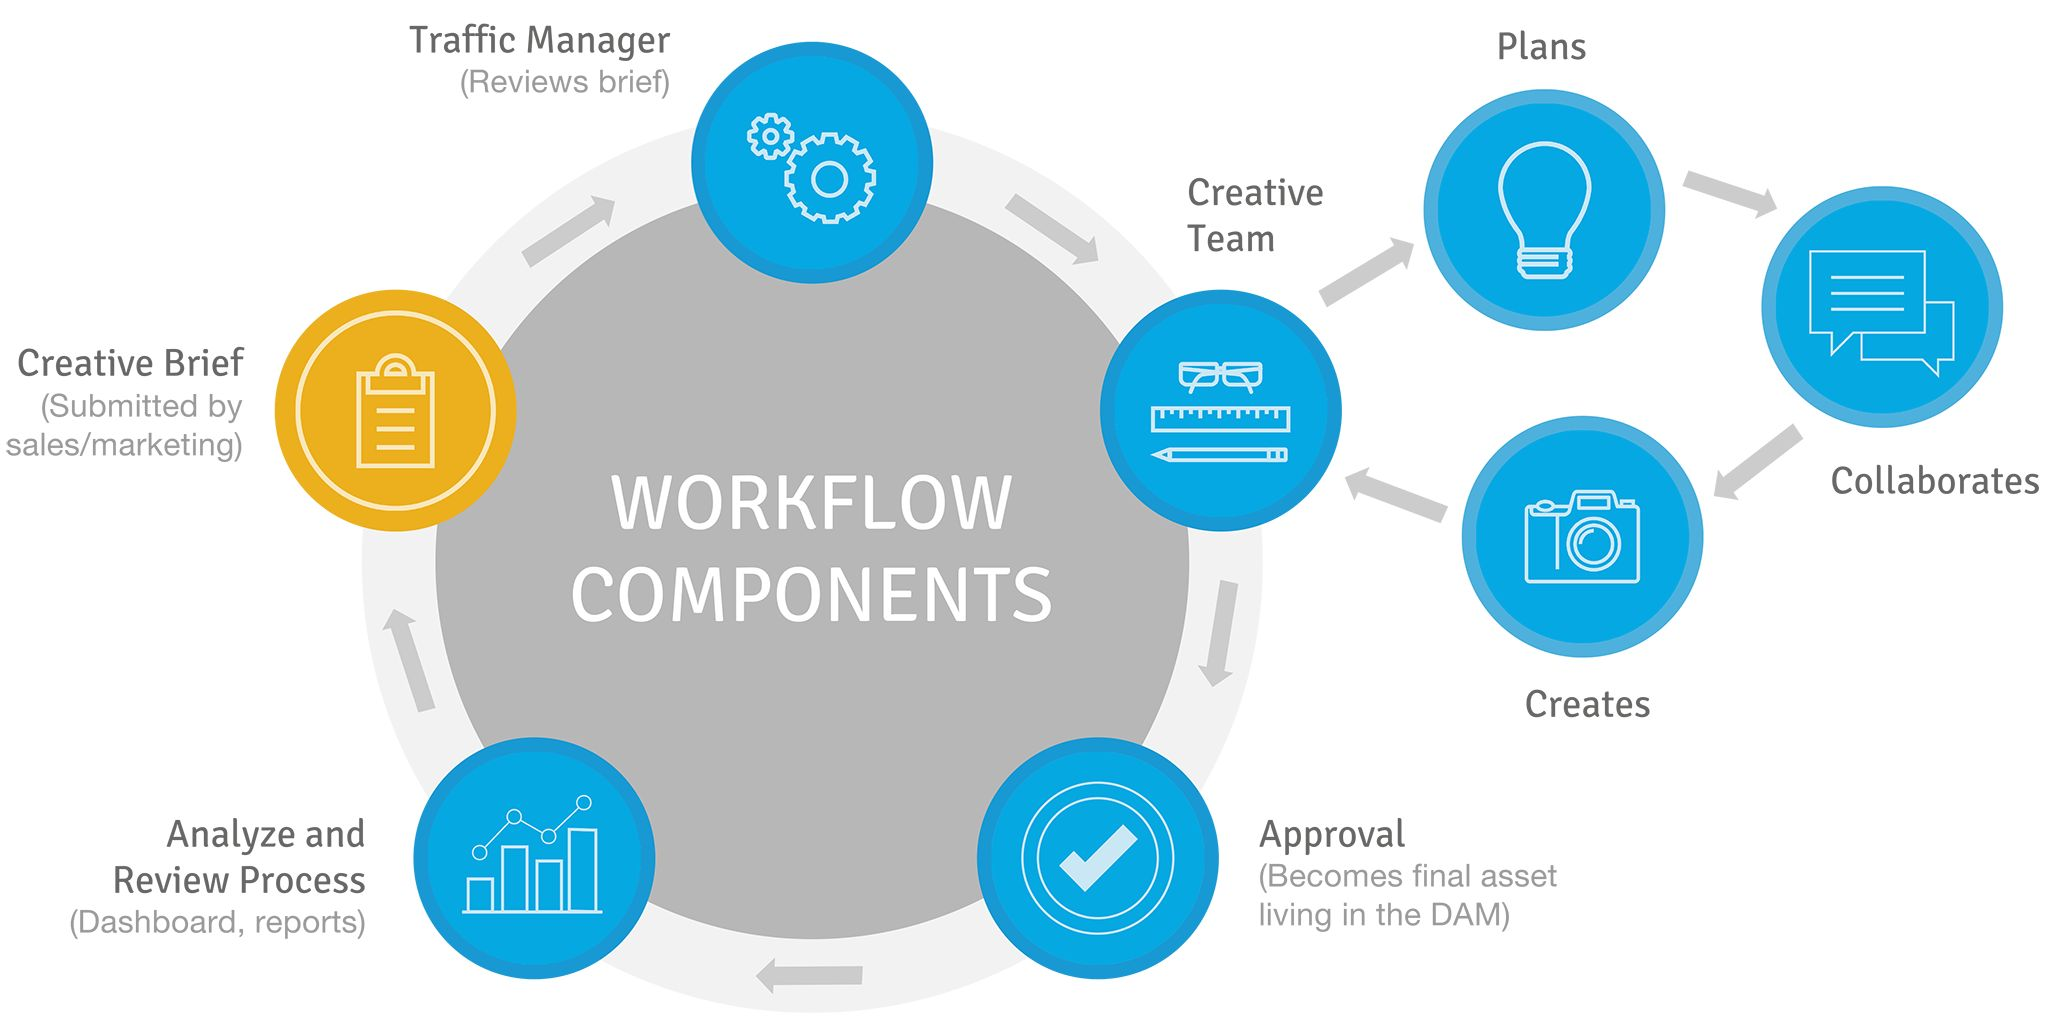 Digital Asset Management Planning Tool and Workflow Components